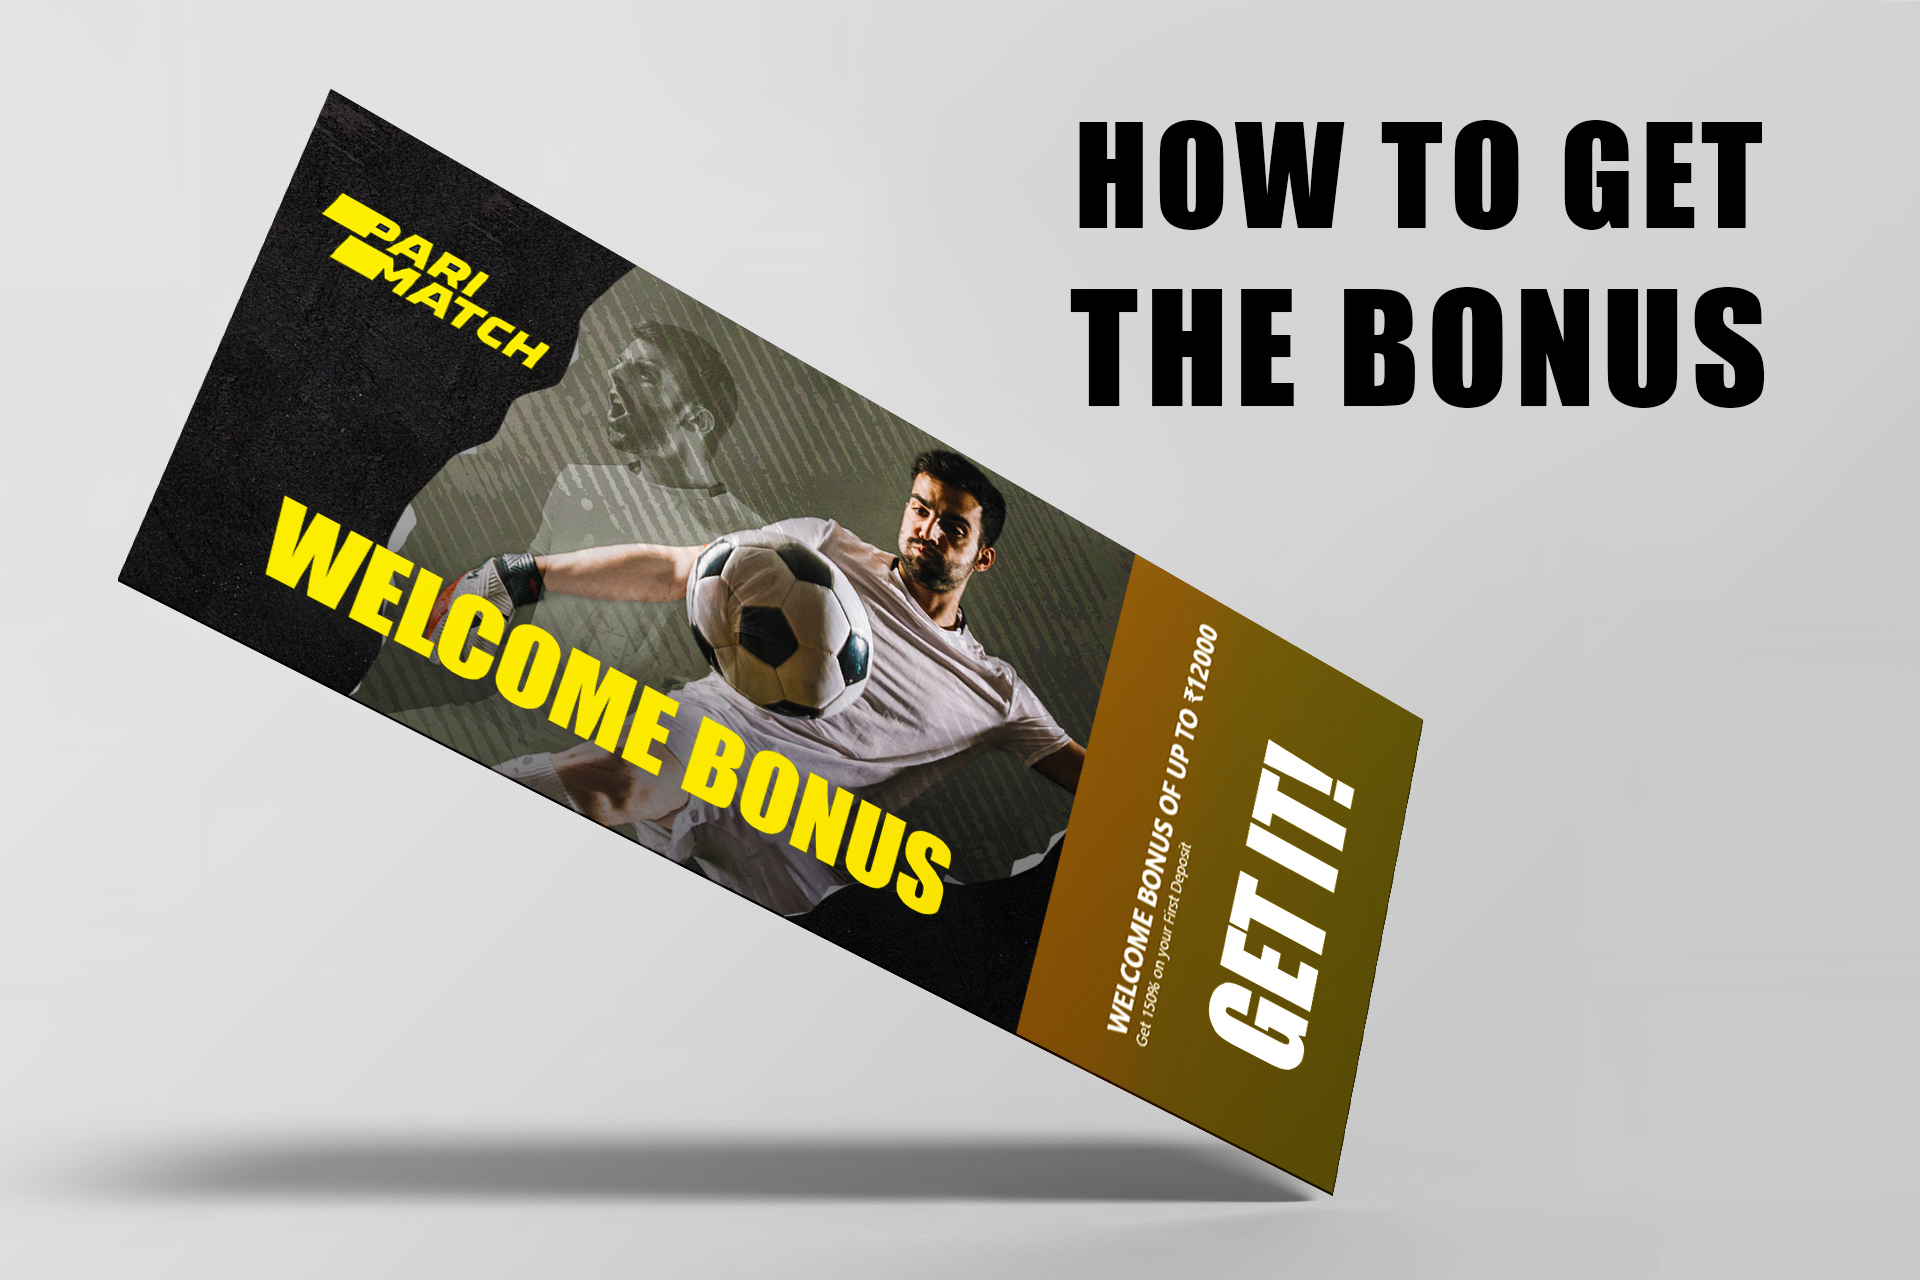 Don't forget to get the welcome bonus from the bookmaker.